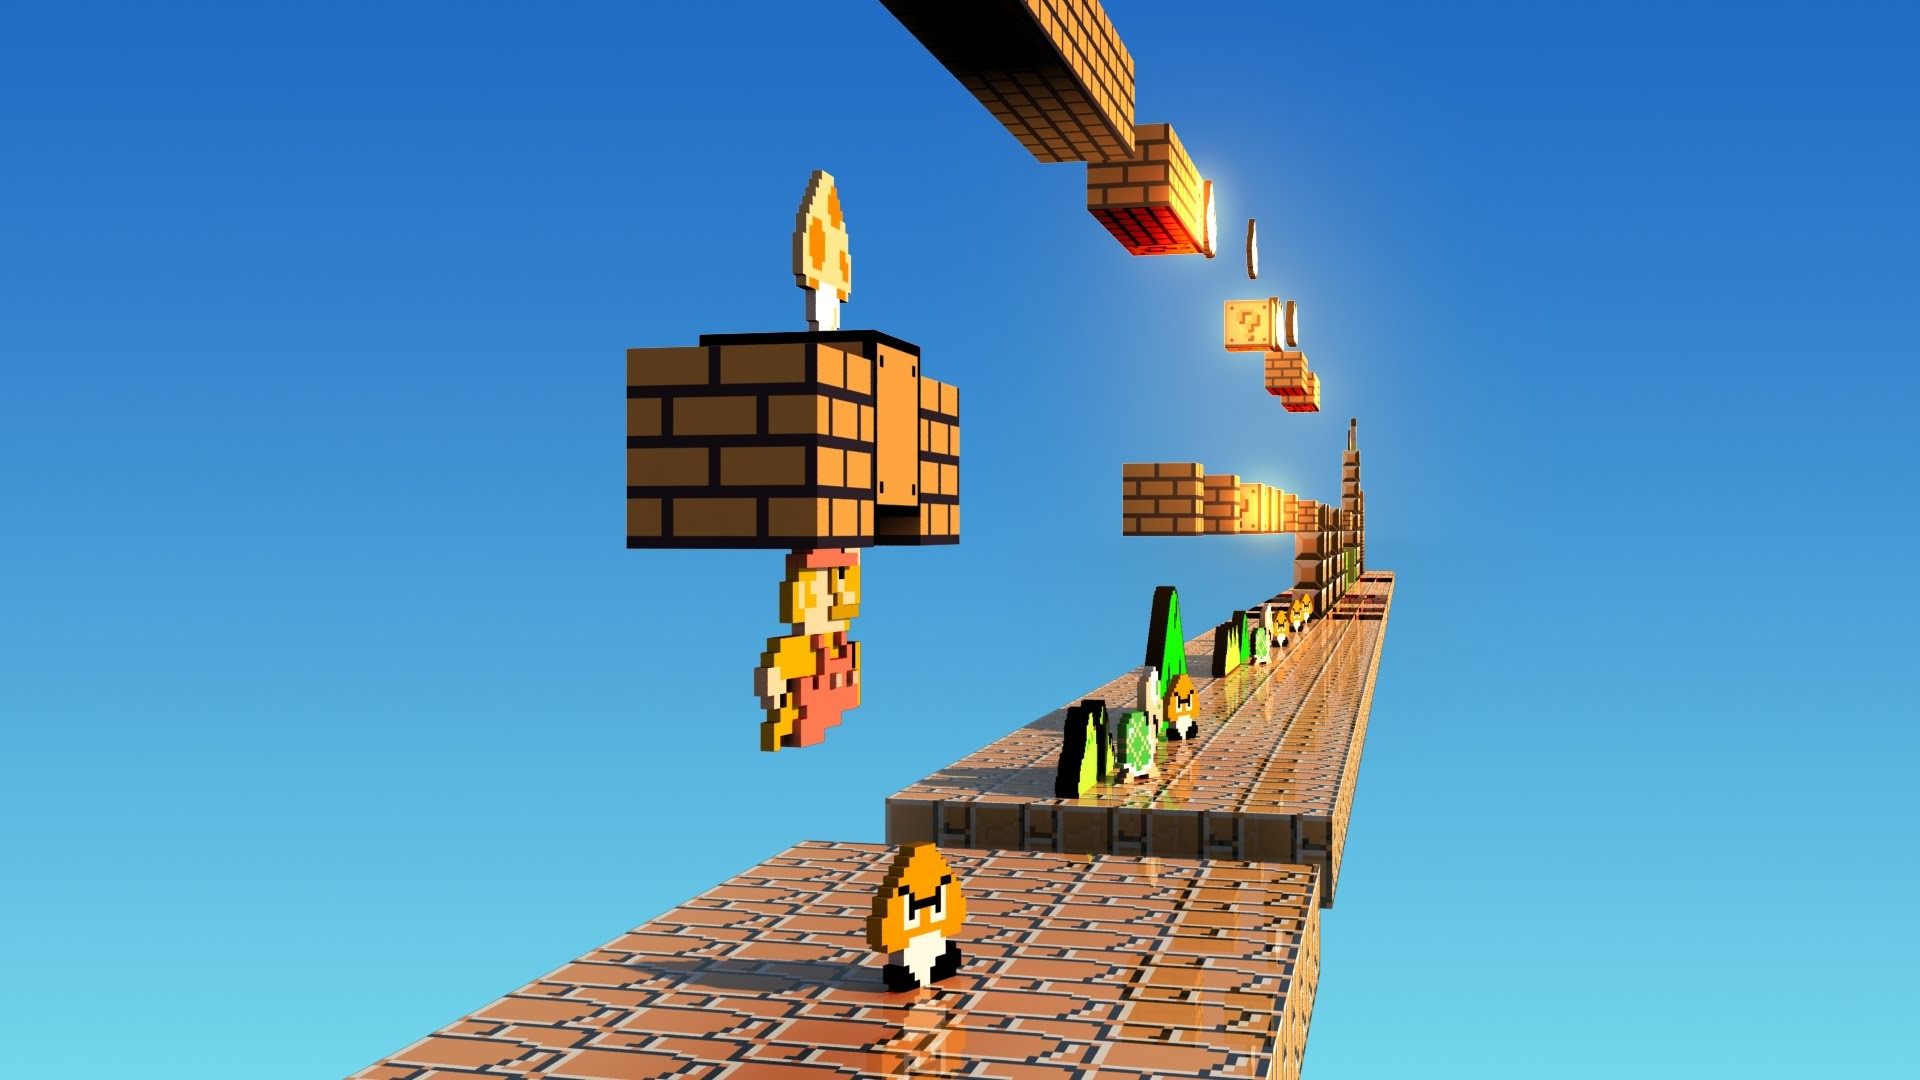 Res: 1920x1080, HD Mario Wallpapers and Photos,  px – By Shantell Kuyper for PC &  Mac, Tablet, Laptop, ...